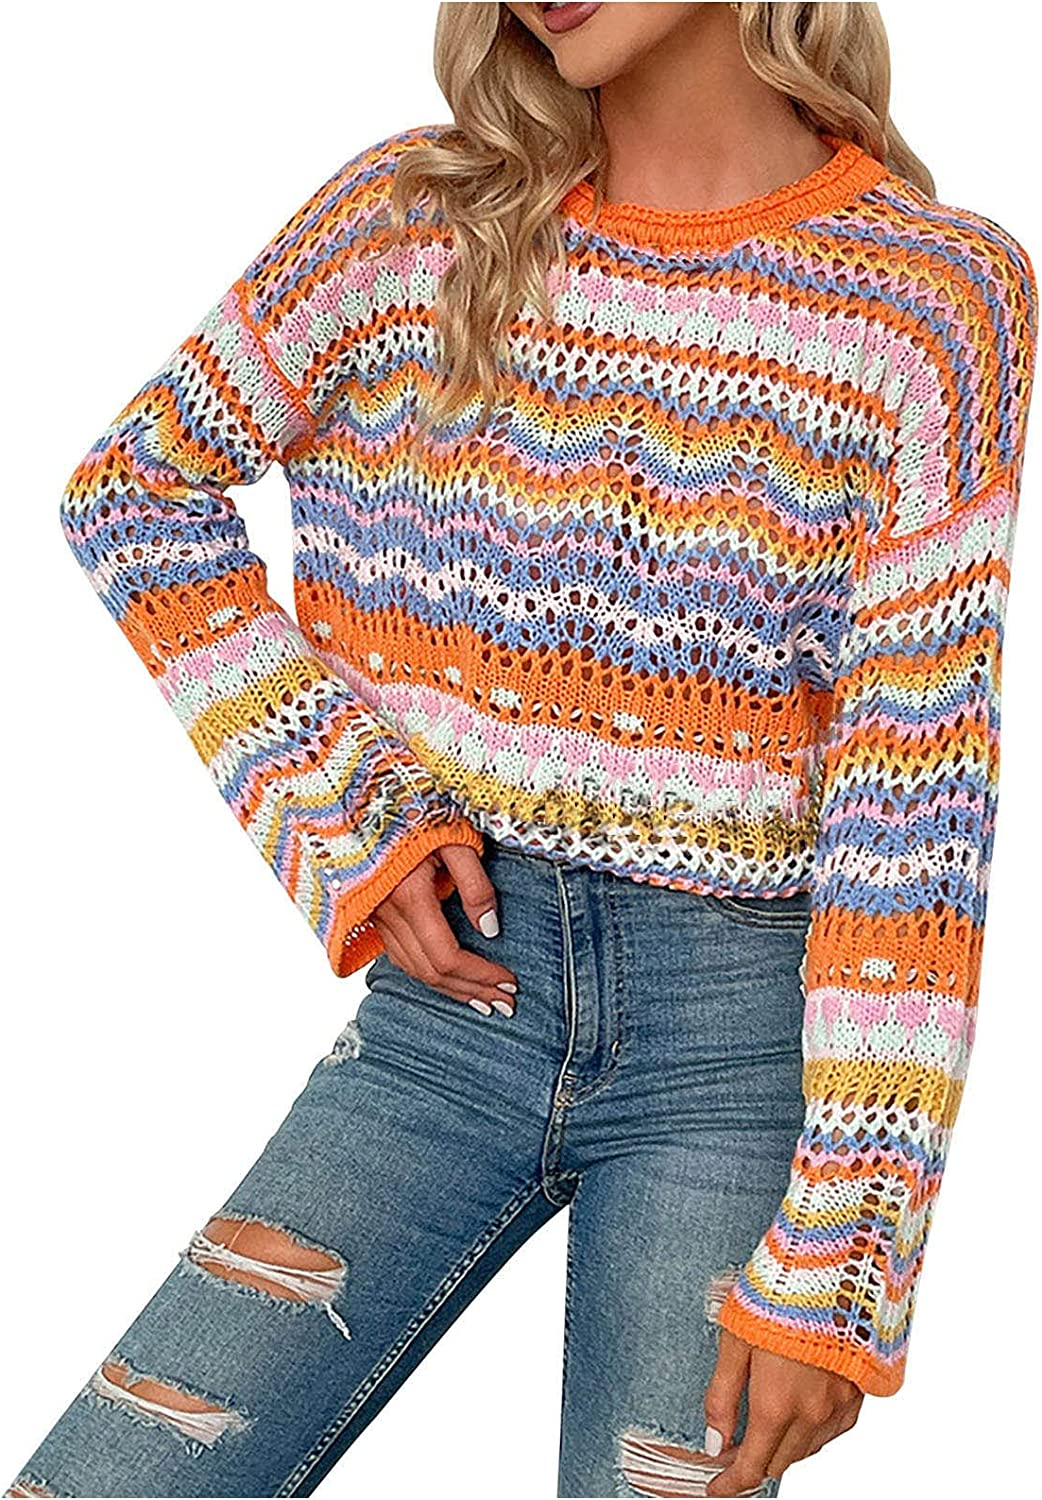 YQRDSHJS Women's Sweater Long Sleeve Crew Neck Striped Color Block Short Sweater Casual Loose Knitted Pullovers Jumper